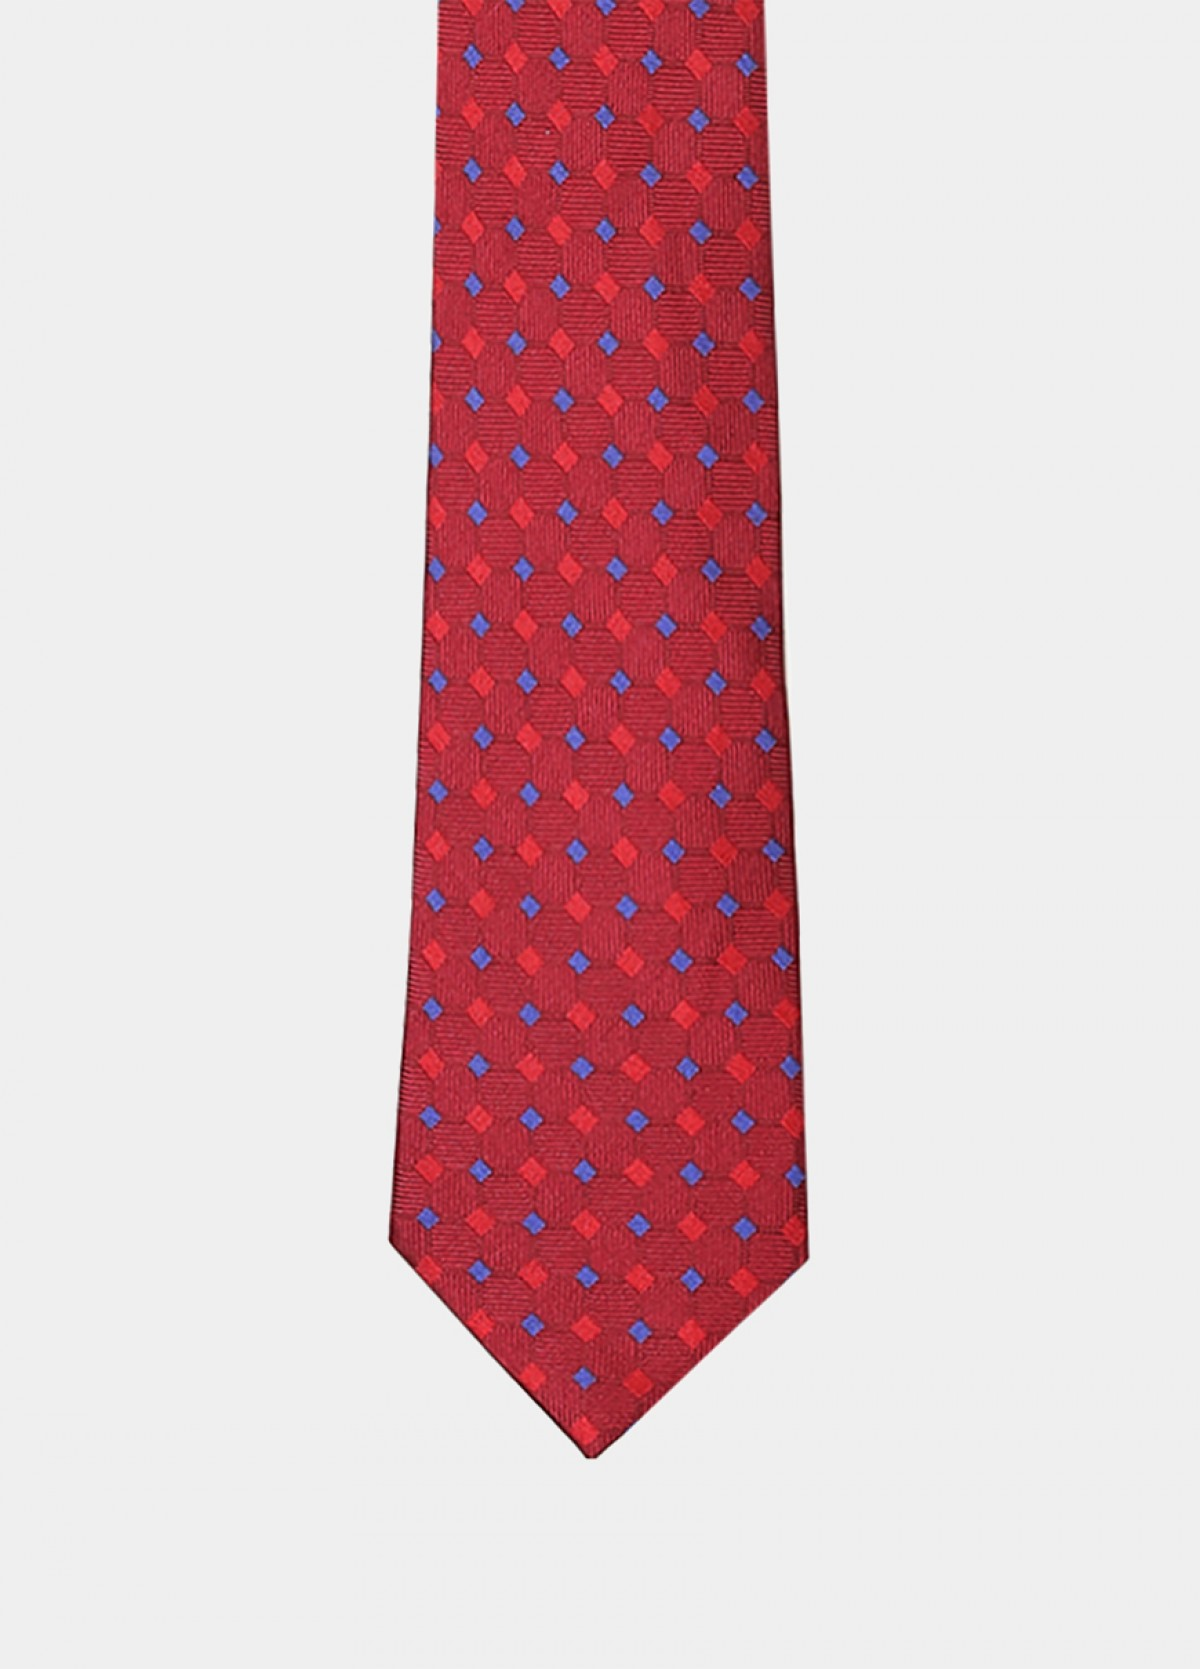 The Red Stain Resistant Tie